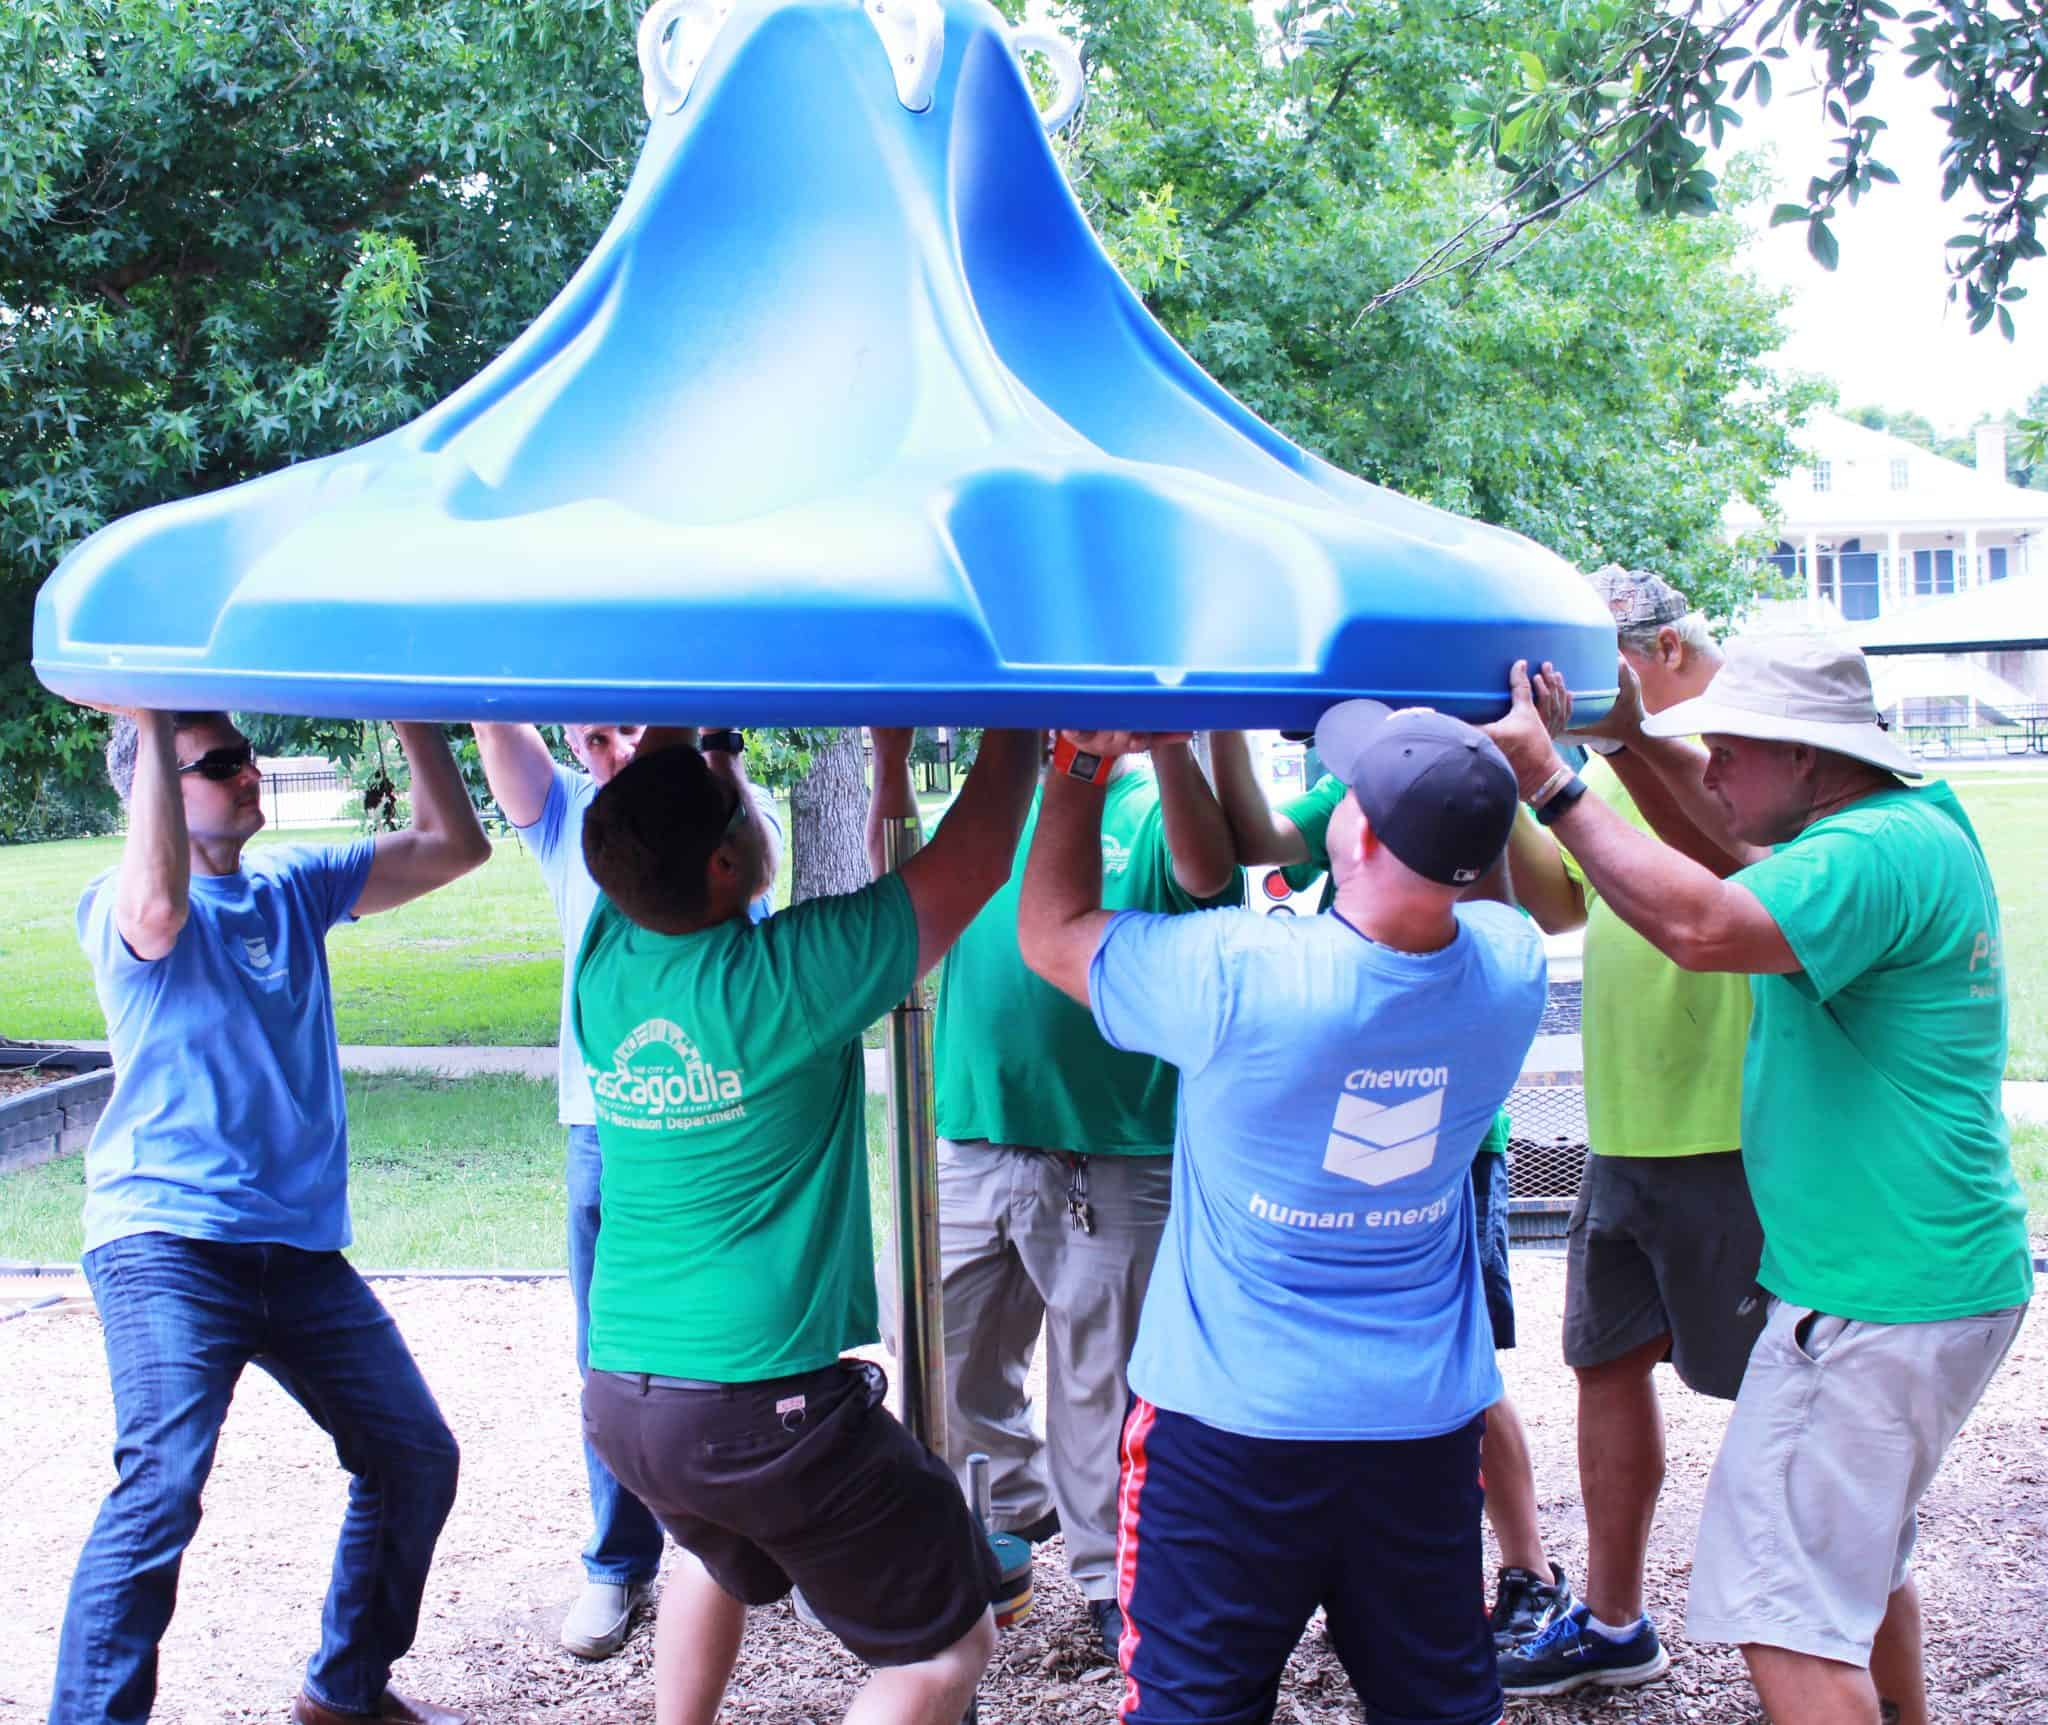 installing-4 Volunteers, City Partner to Make Playground More Accessible